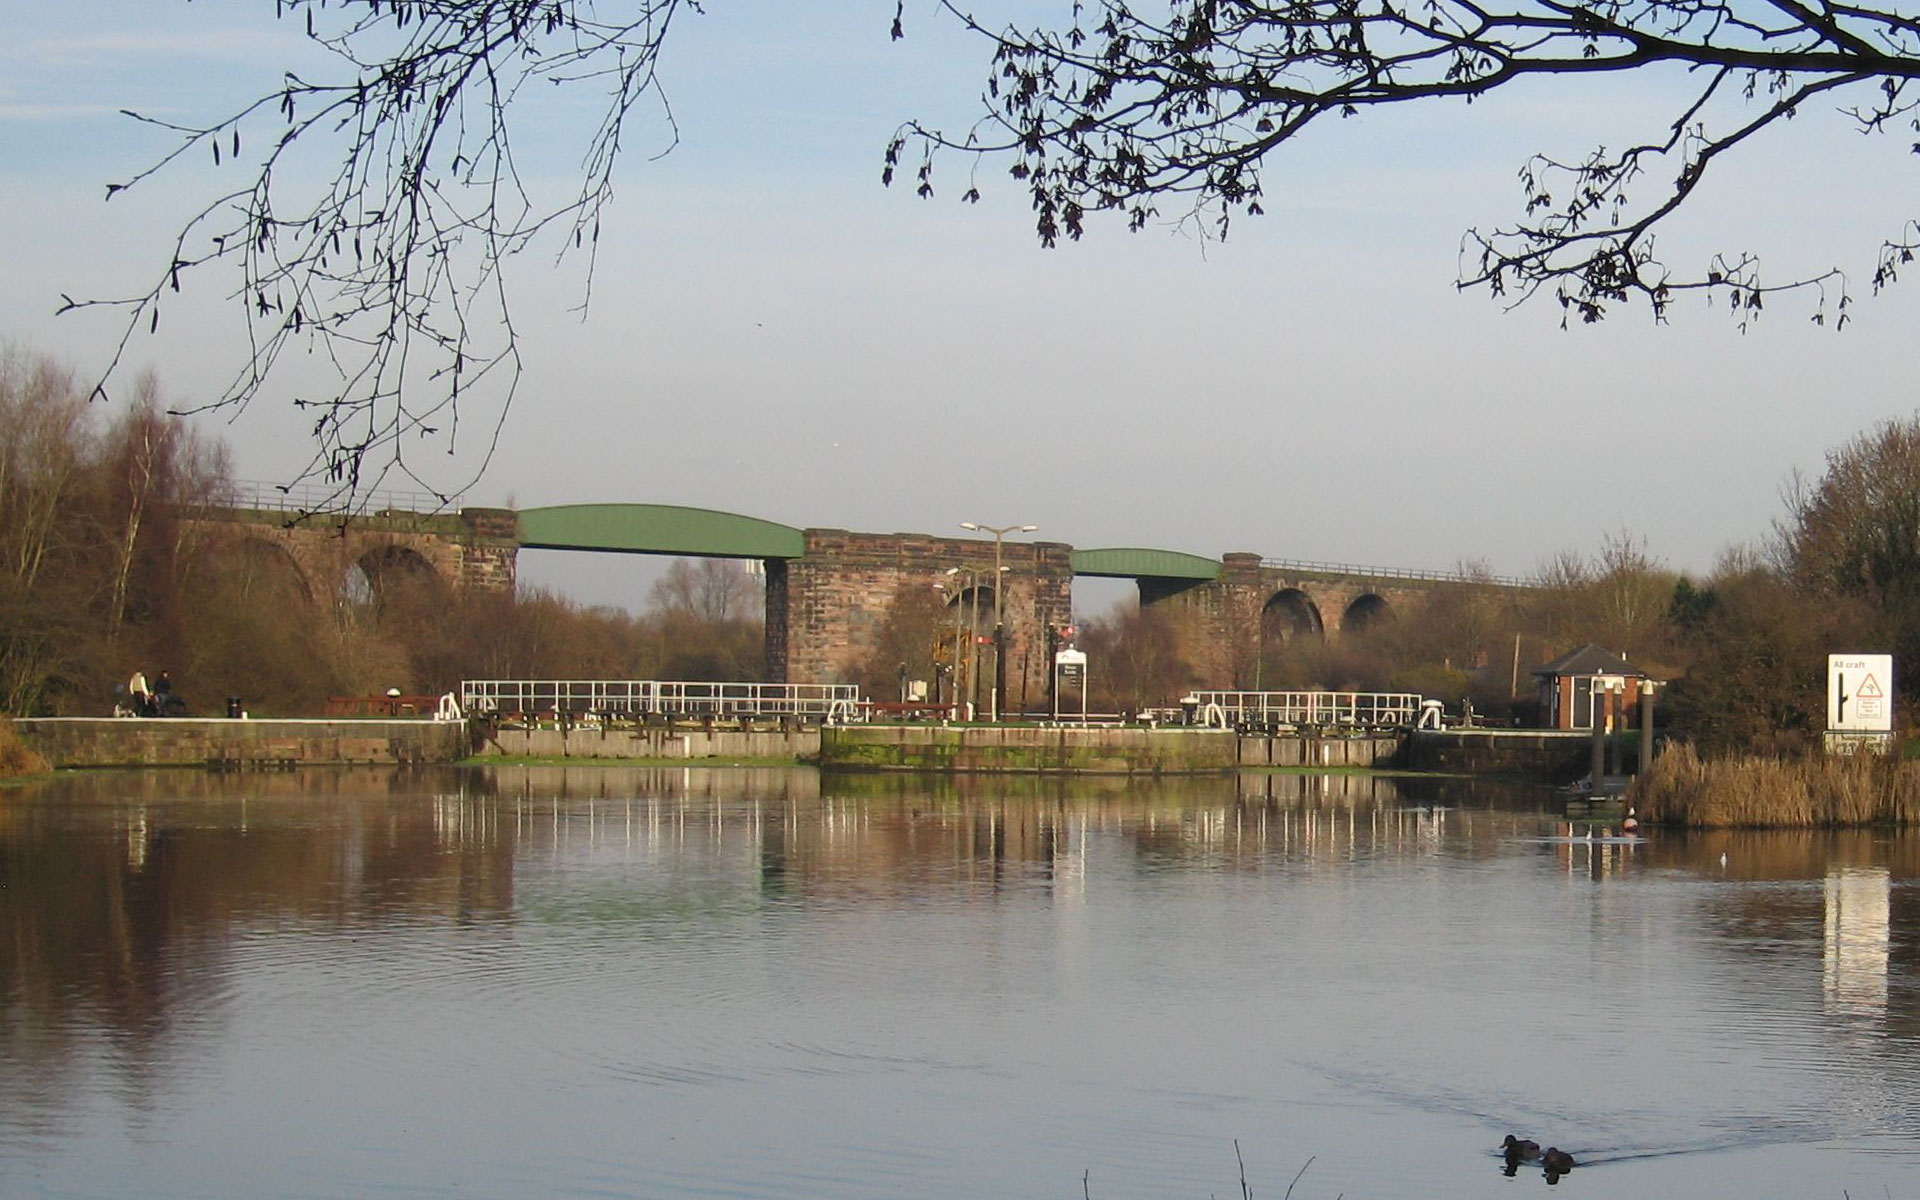 Northwich Railway Viaduct & Hunt's Lock